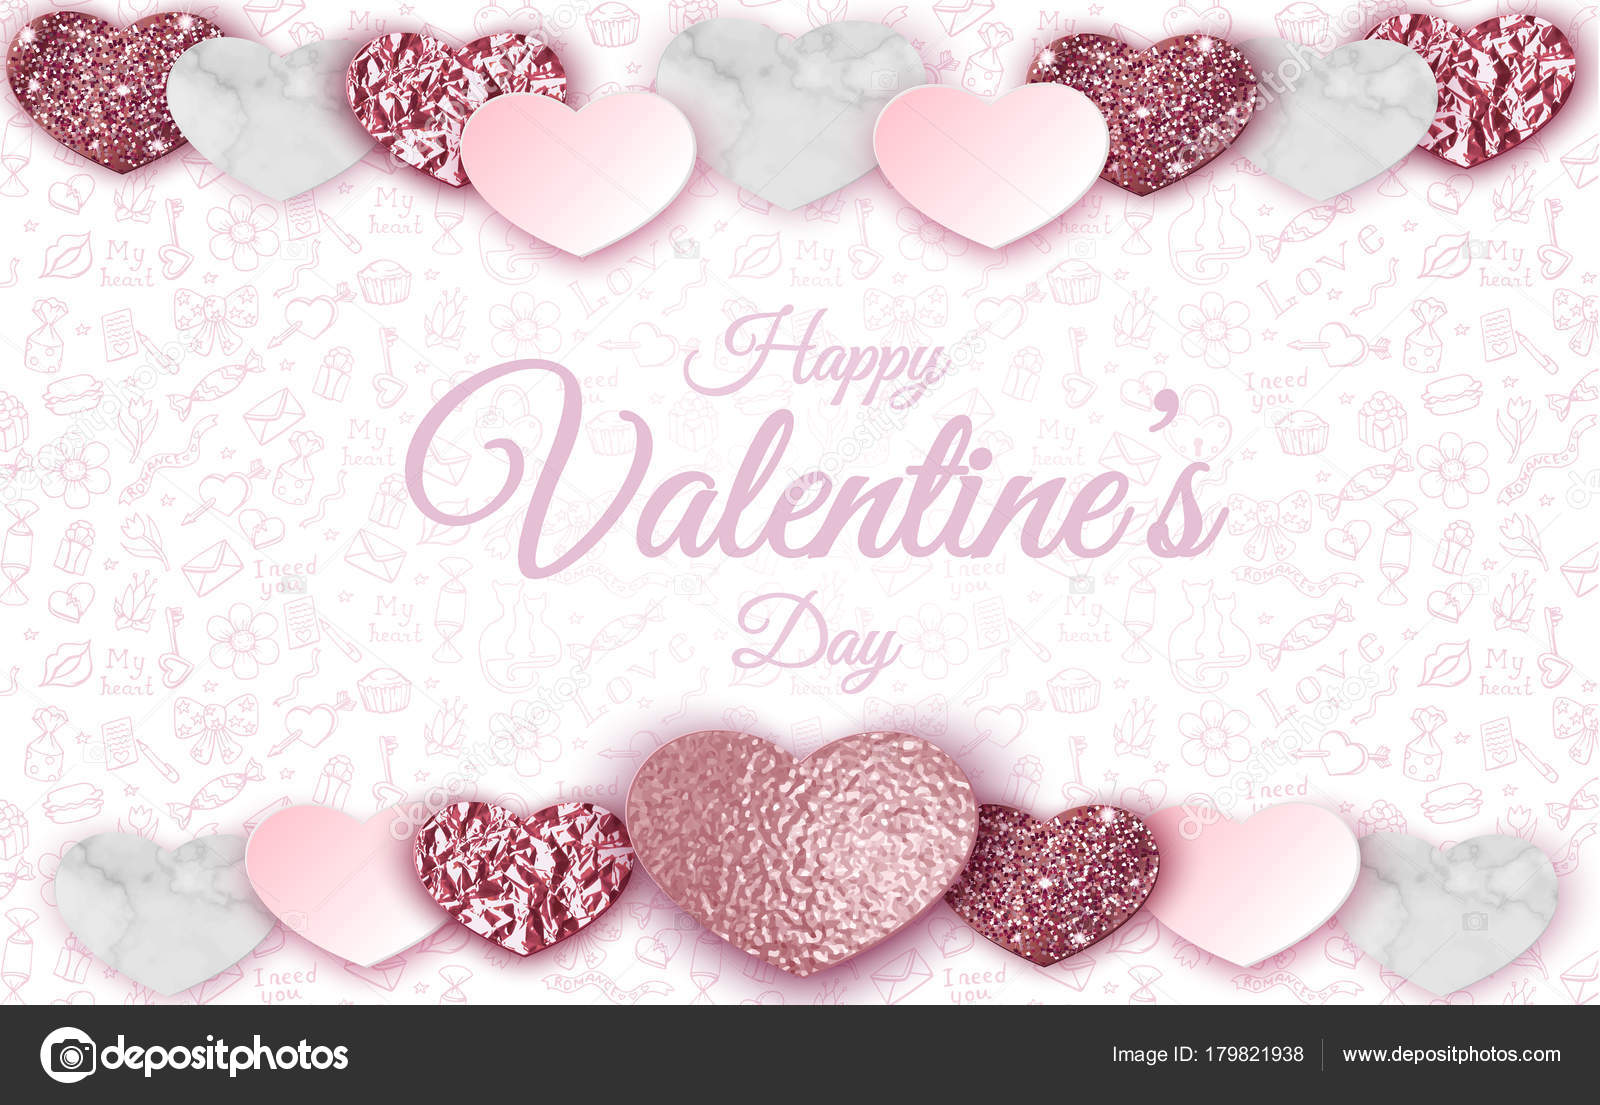 Great Wallpaper Marble Heart - depositphotos_179821938-stock-illustration-geometric-valentine-day-card-marble  You Should Have_41774.jpg